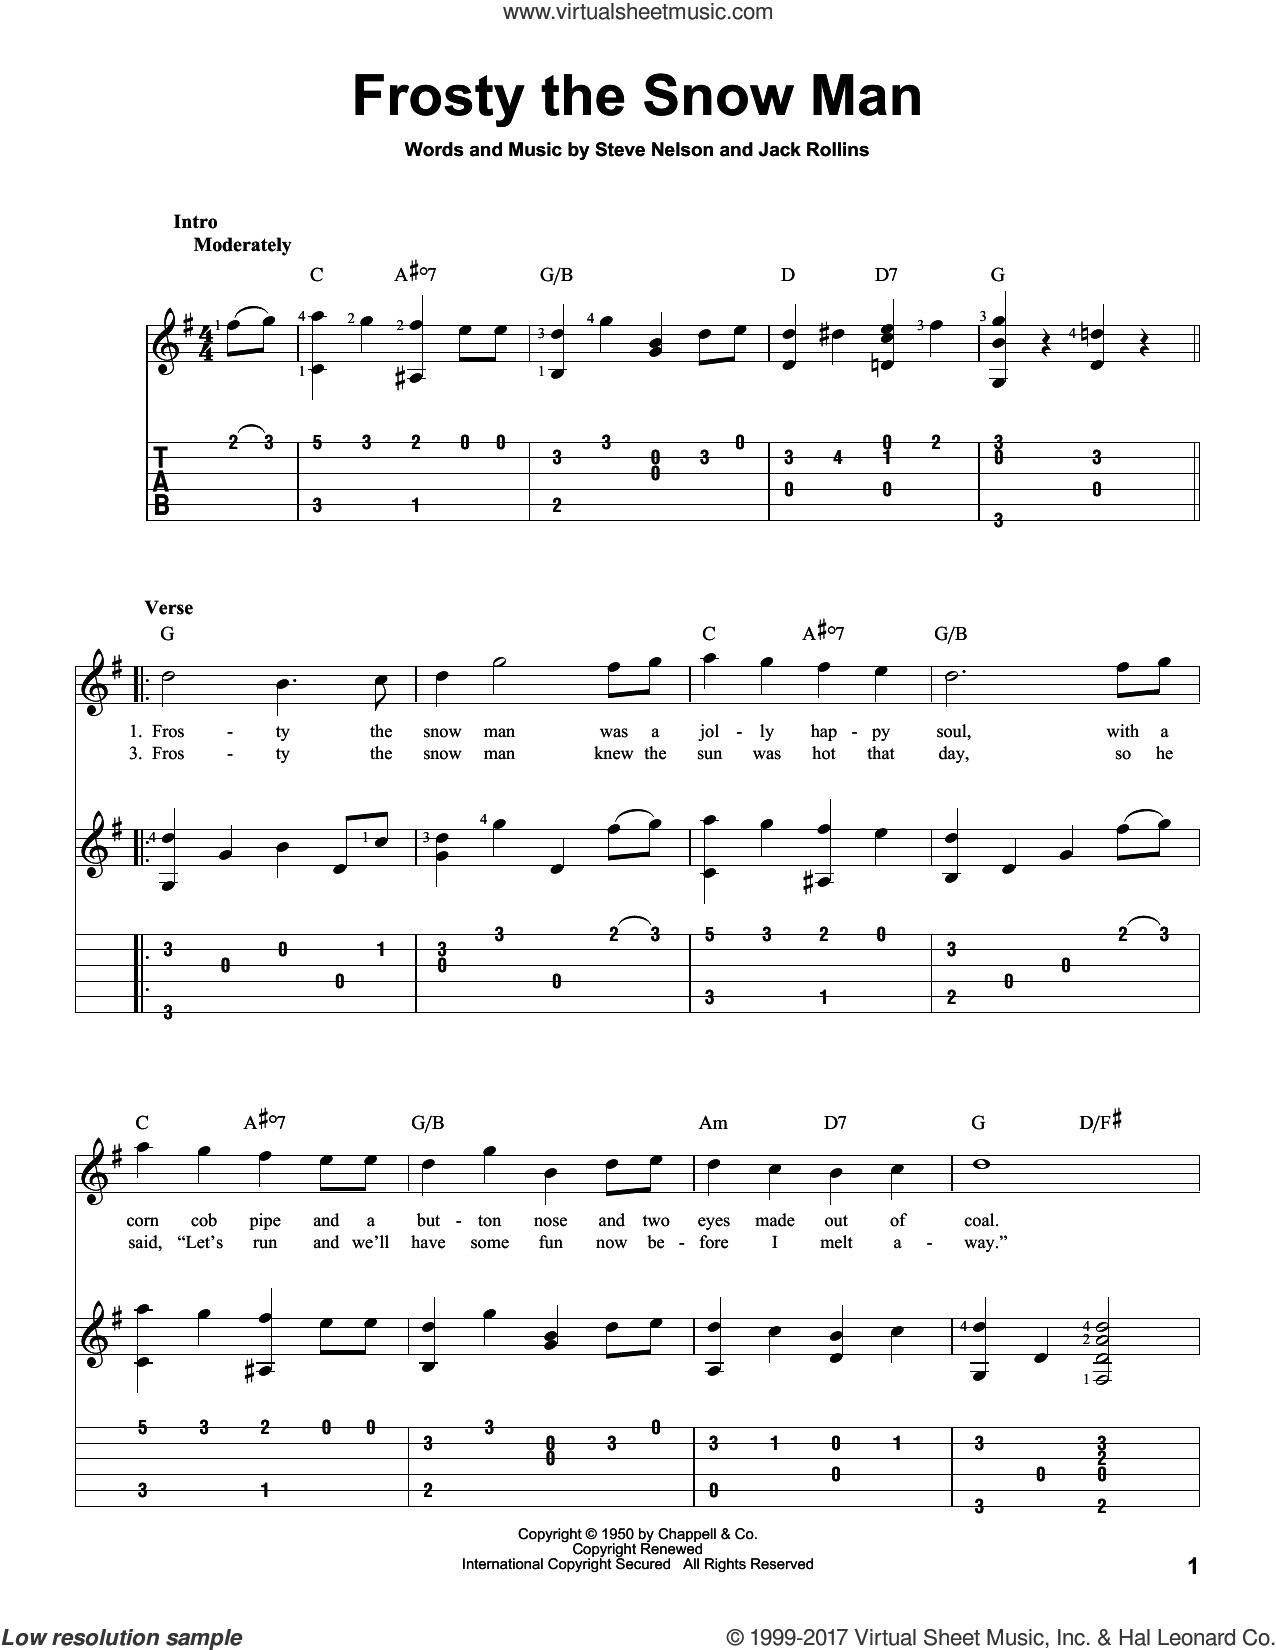 Frosty The Snow Man sheet music for guitar solo by Gene Autry, Jack Rollins and Steve Nelson, intermediate skill level